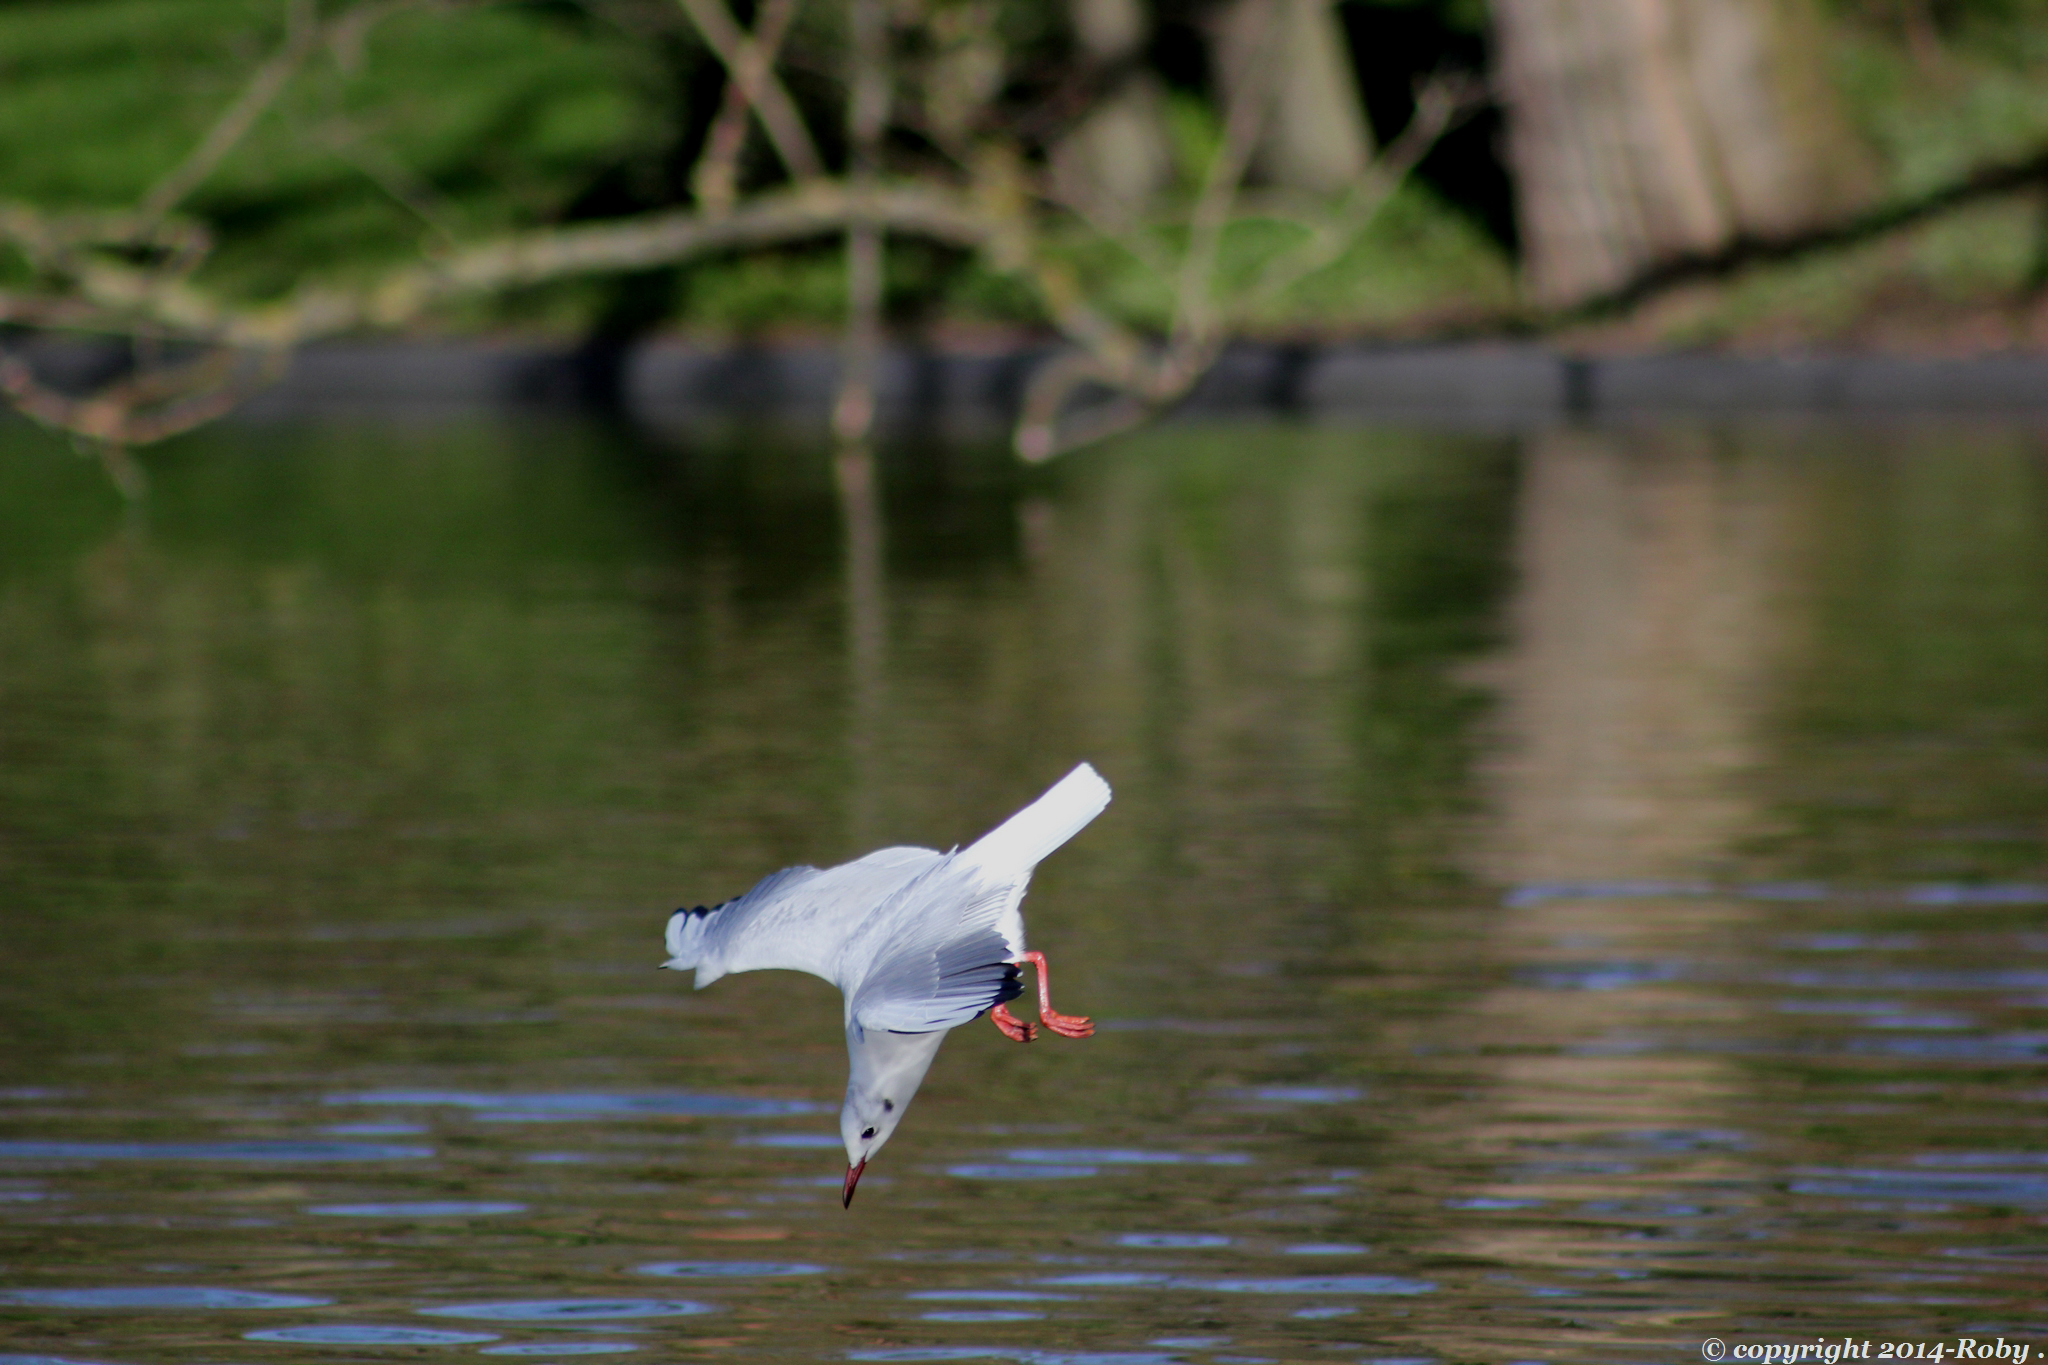 mouette rieuse -2014 Roby